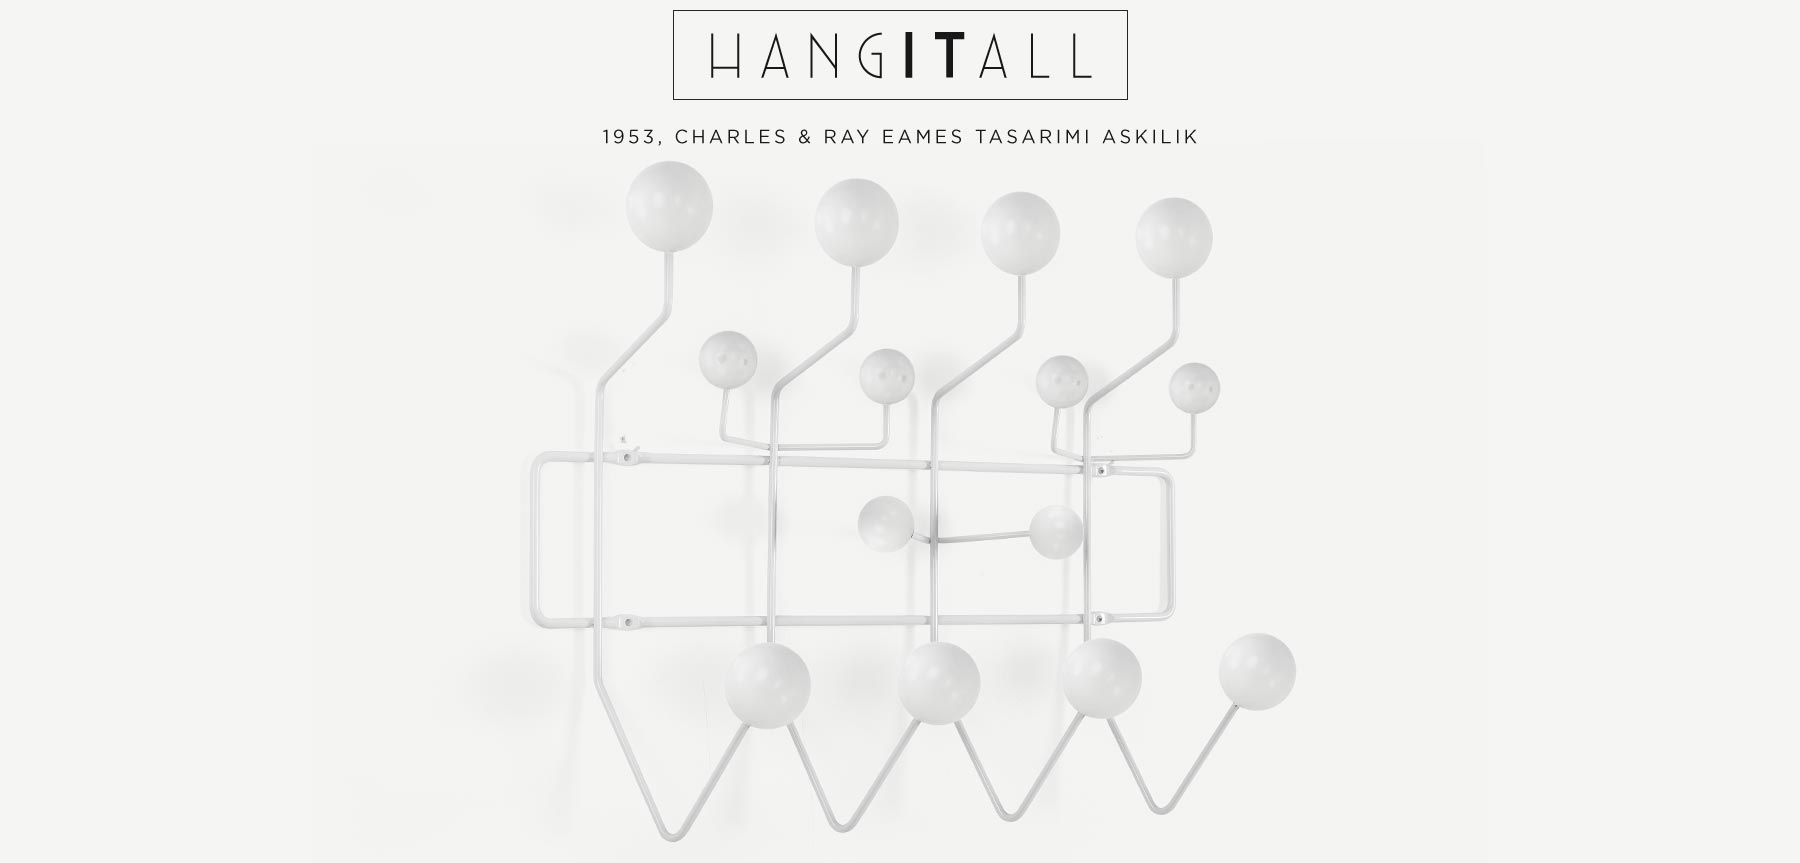 CHARLES EAMES HANG IT ALL BEYAZ TOPLU ASKILIK'in resmi